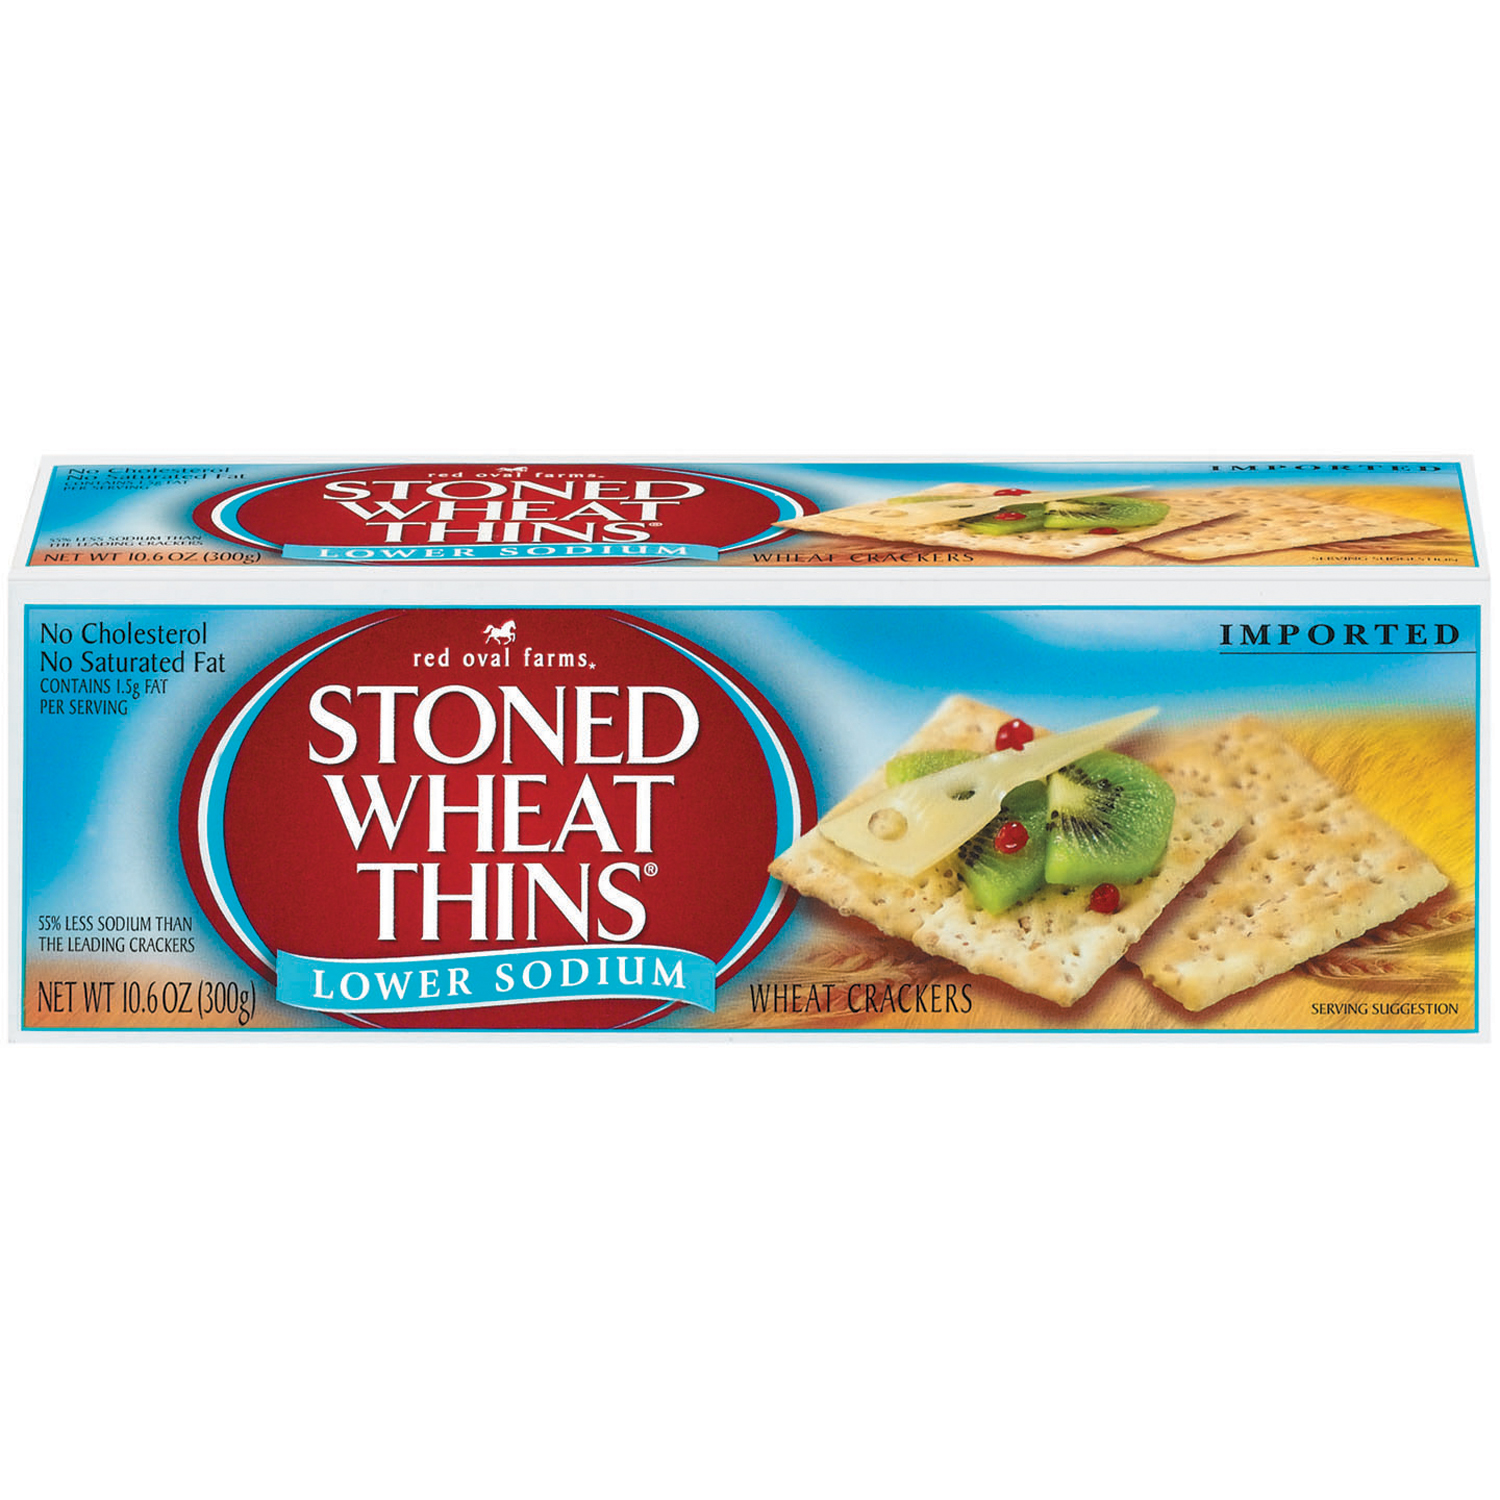 RED OVAL FARMS Stoned Wheat Thins Original Crackers 10.6 oz